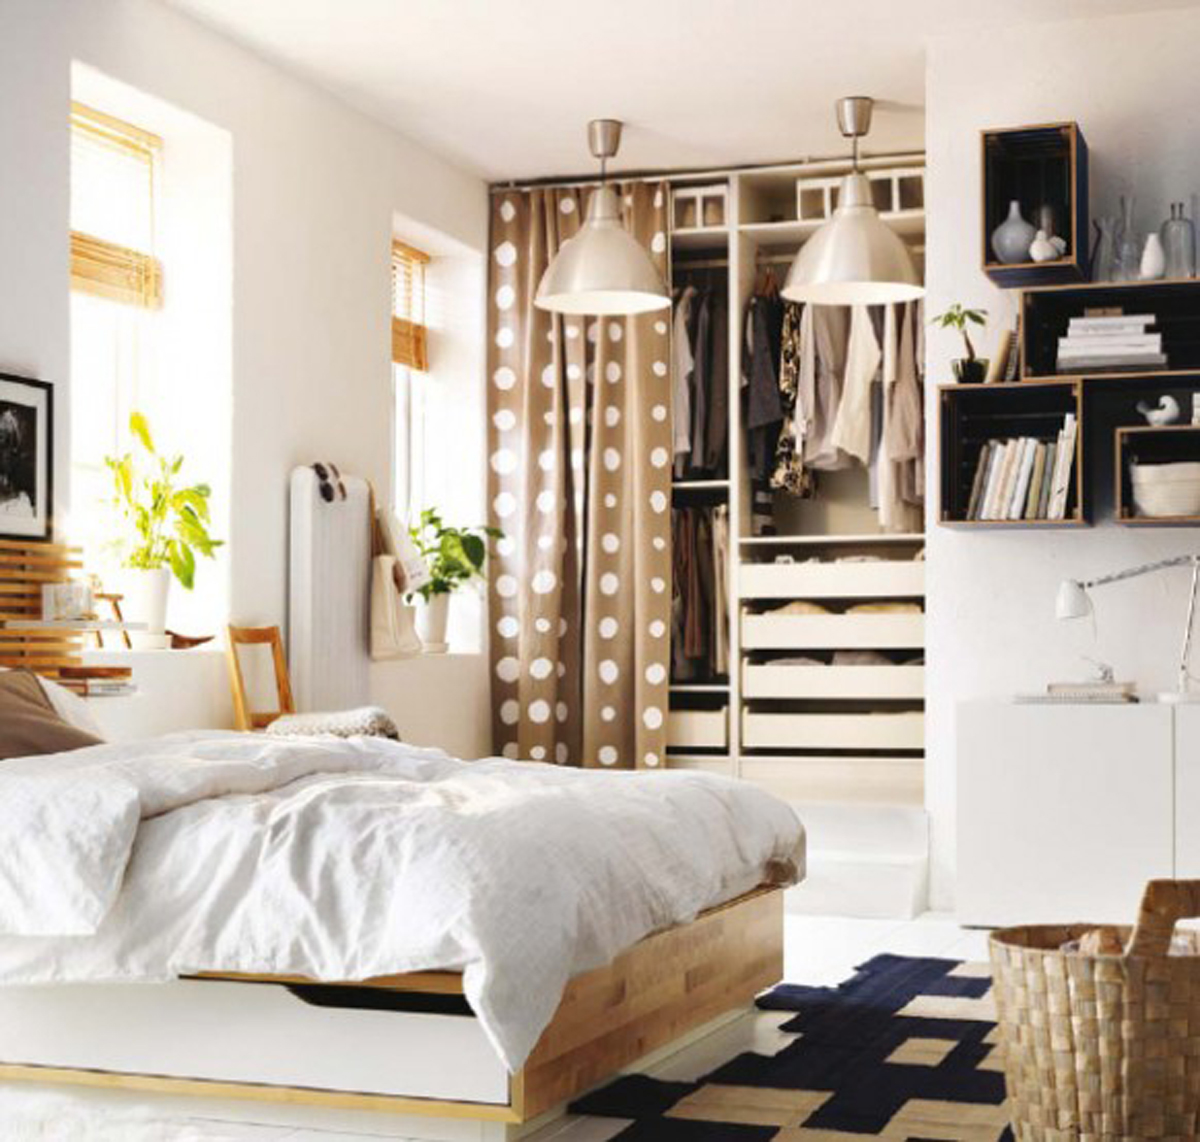 Bedroom Ideas Ikea: Contemporary IKEA Bedroom Furniture Ideas